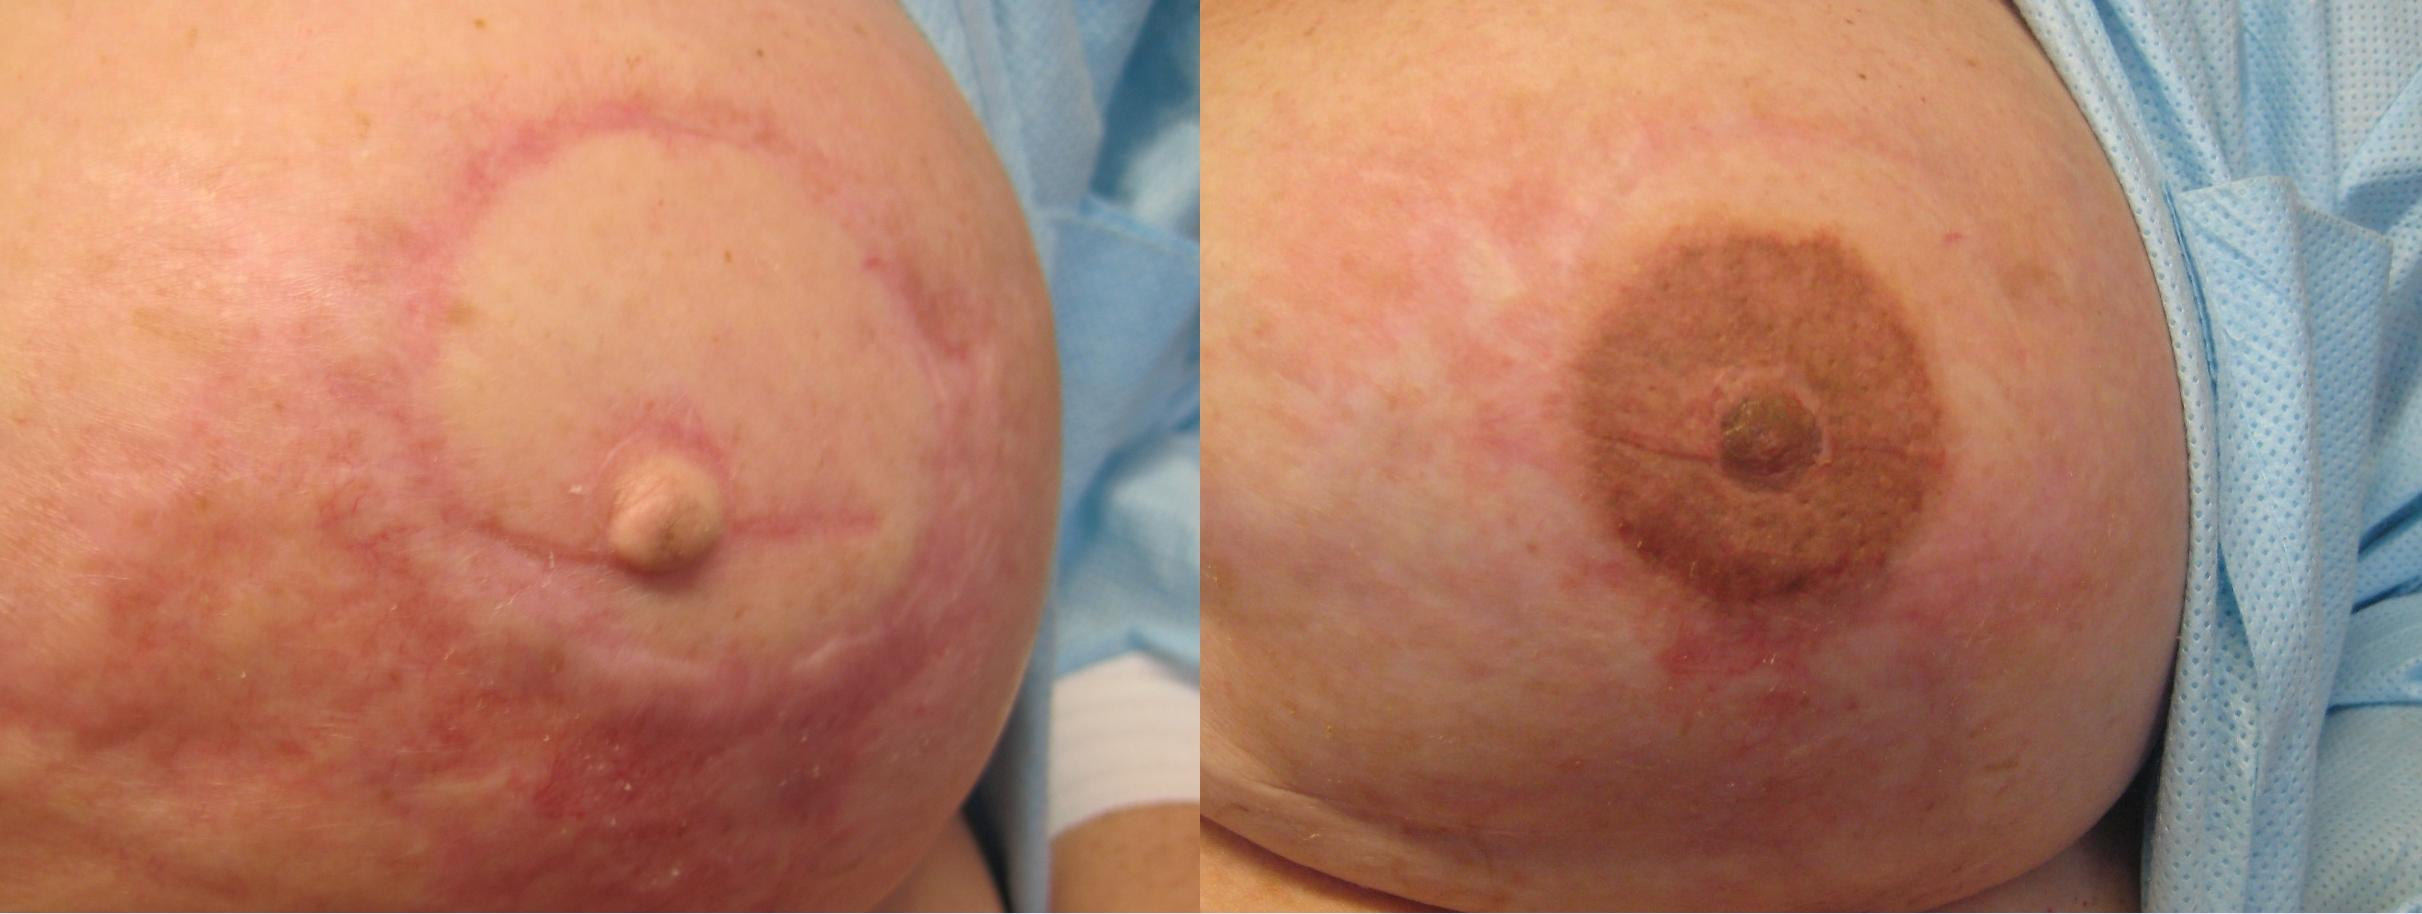 heavy scarring after mastectomy after repigmentation